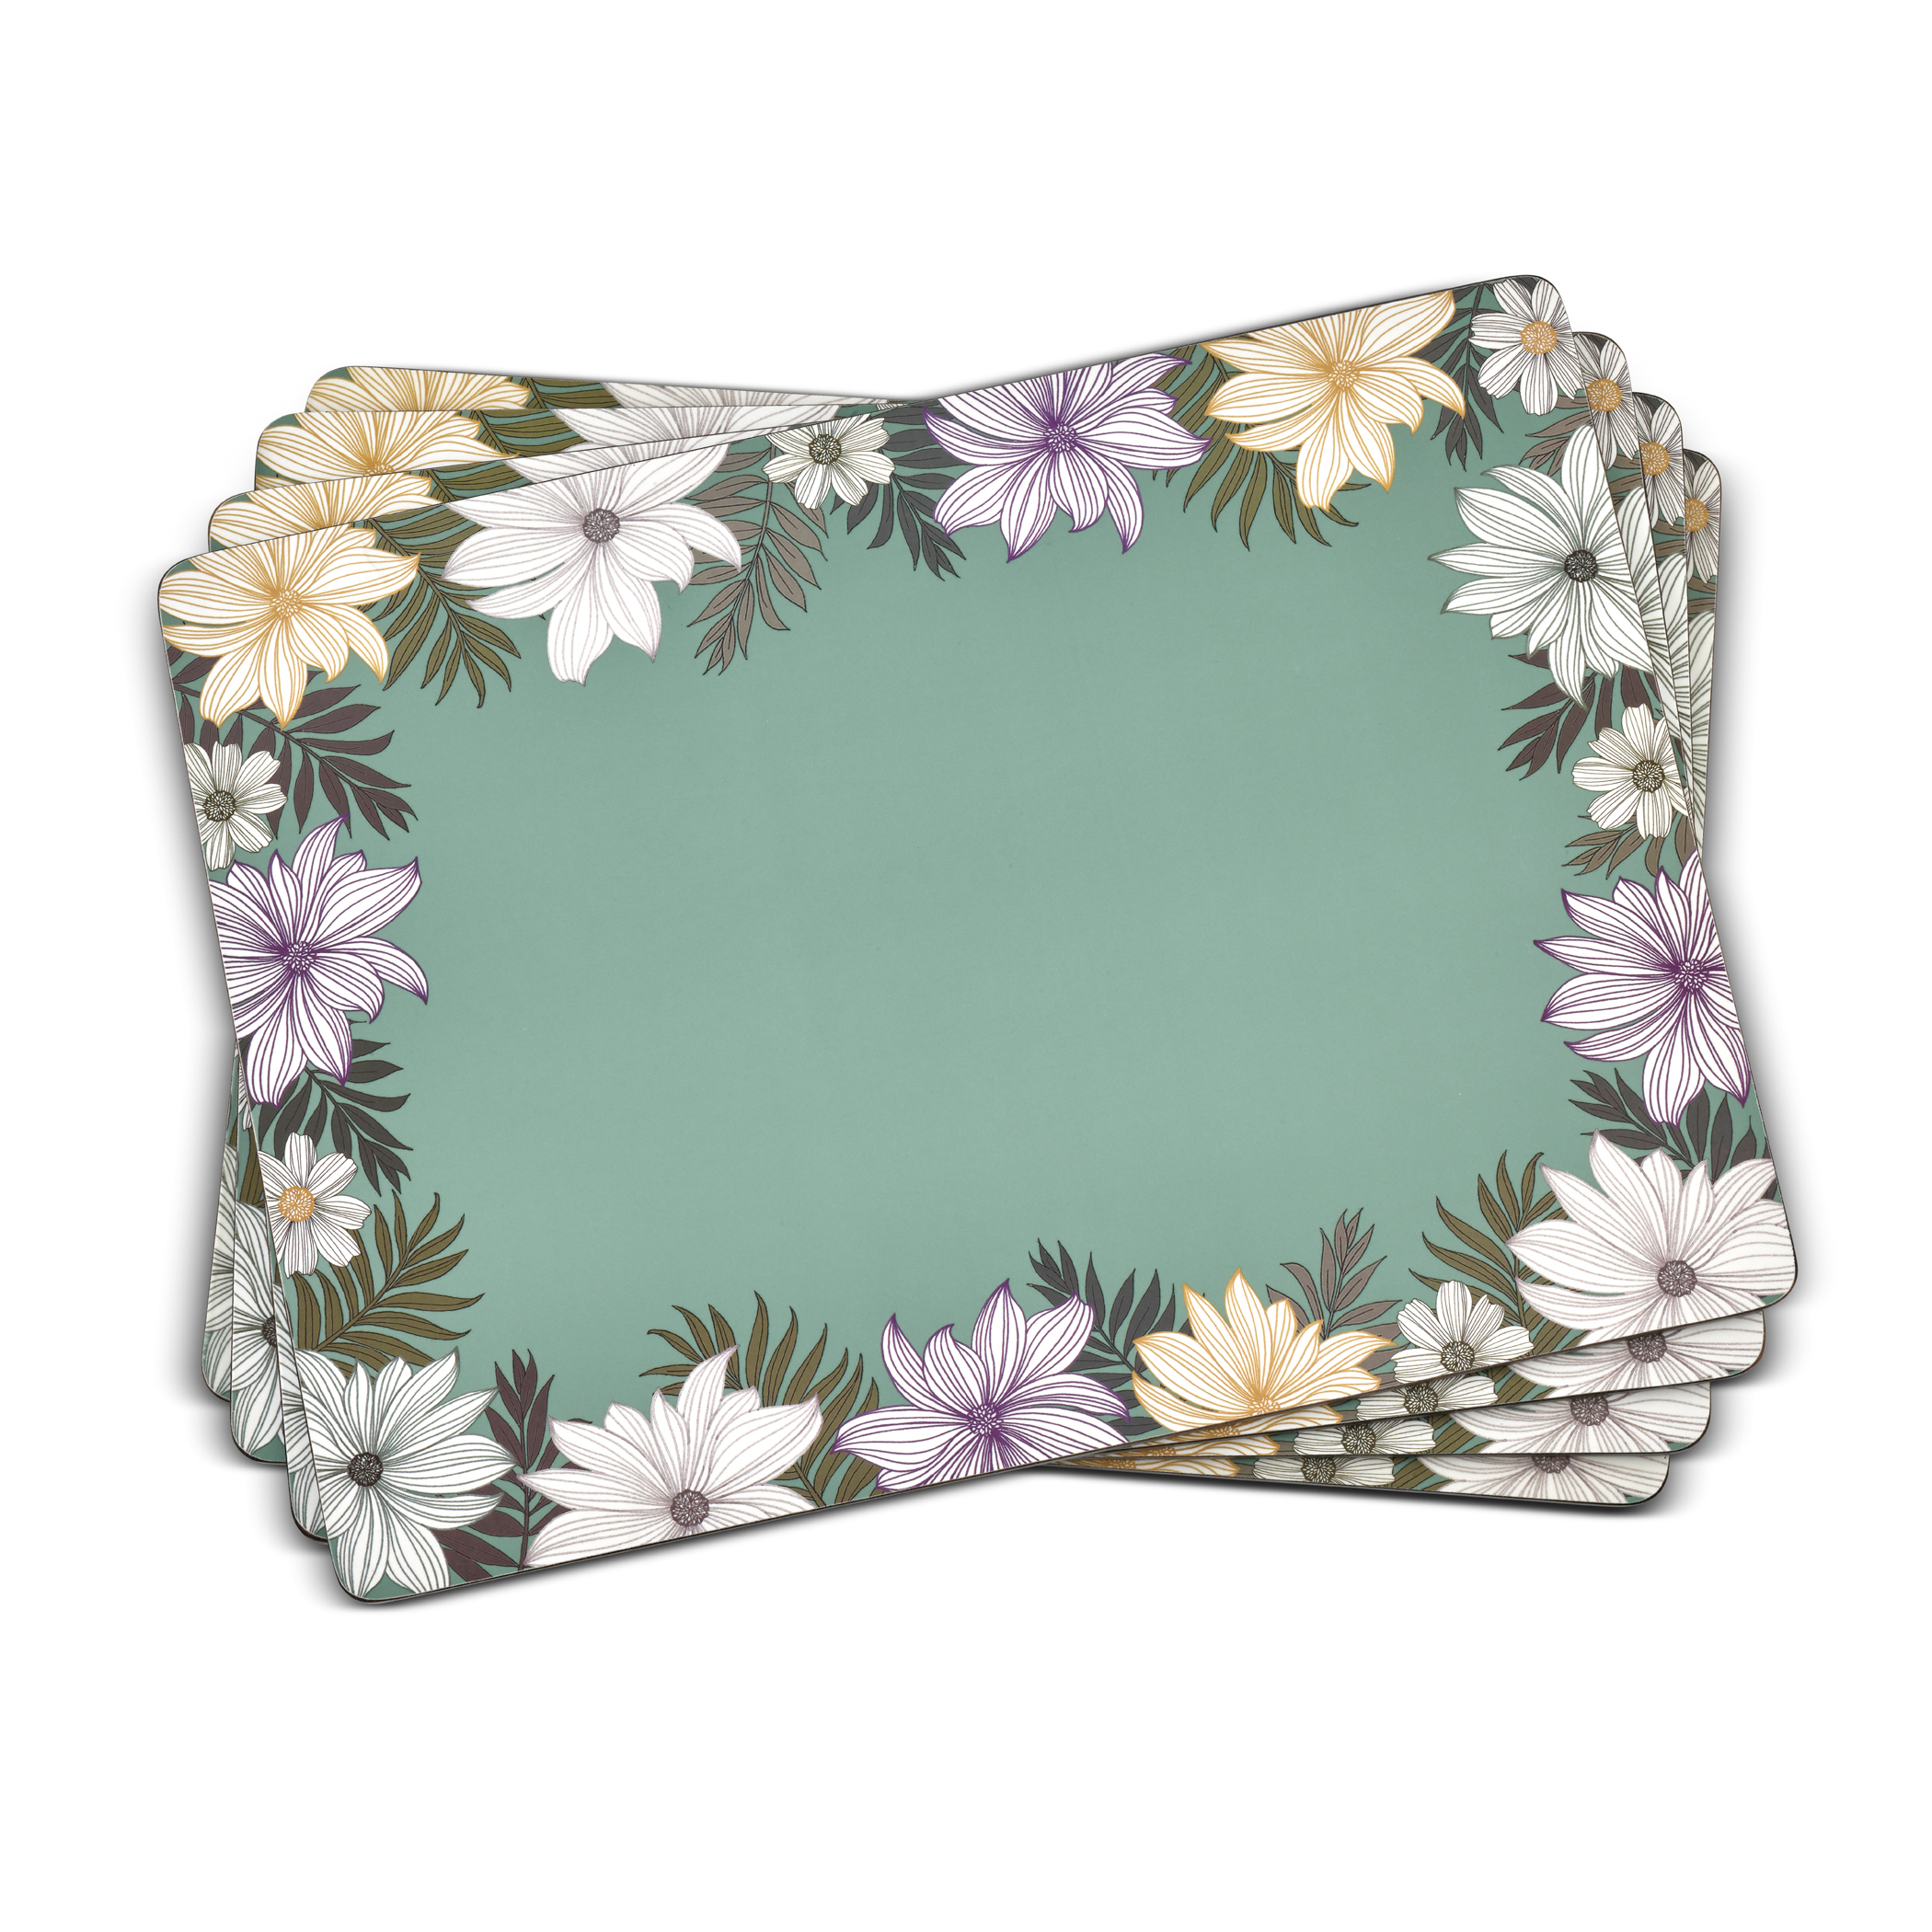 Pimpernel Atrium Placemats Set of 4 image number 0